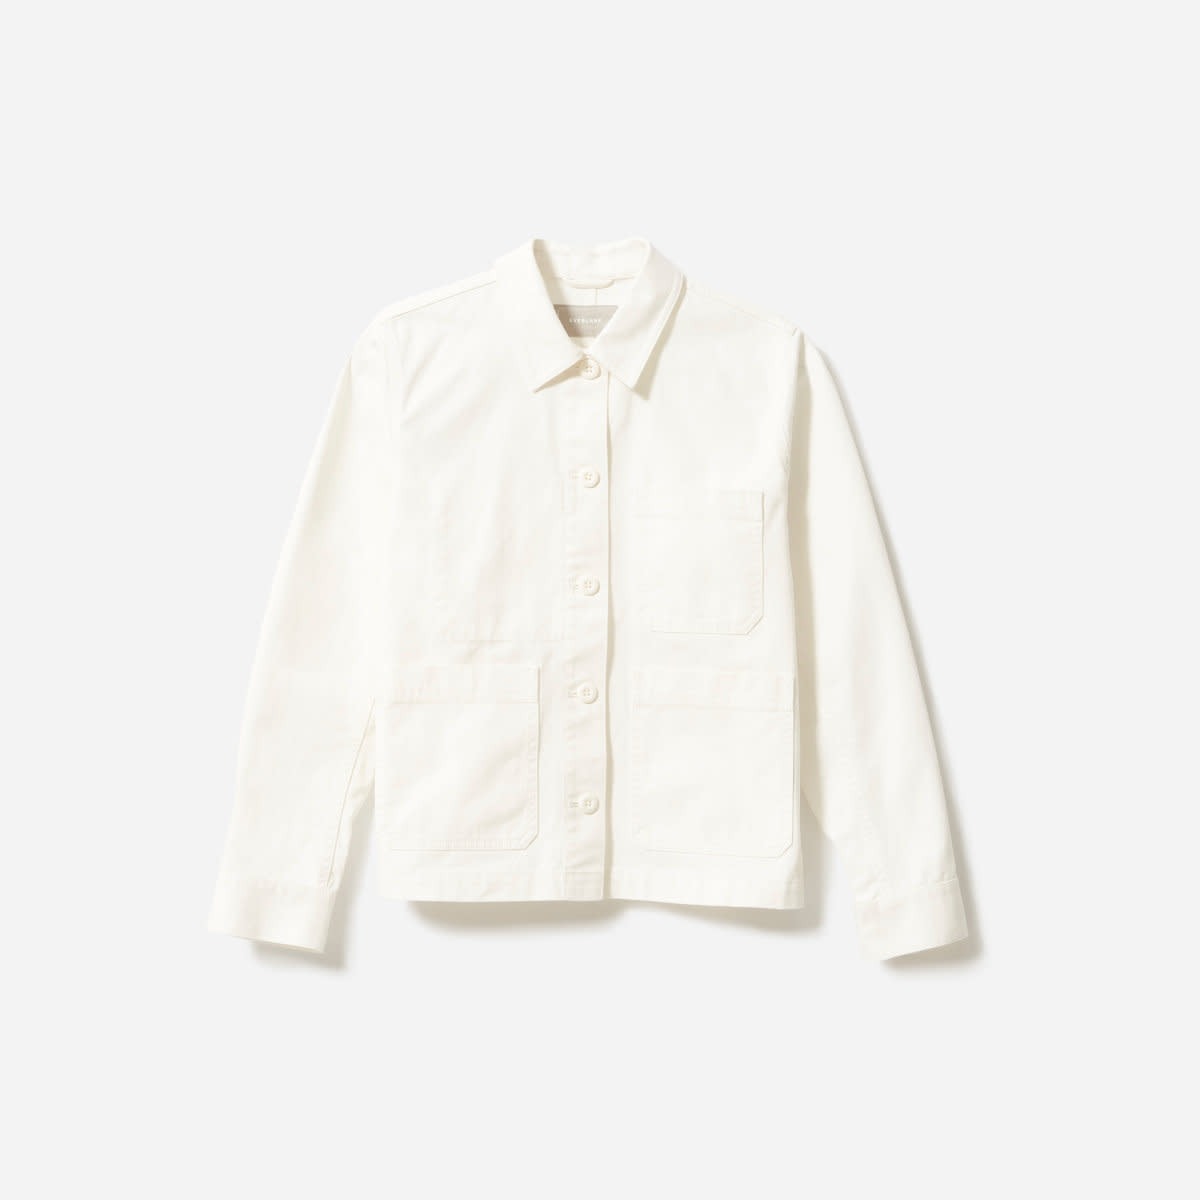 Everlane Women's Chore Jacket, $68, available here.